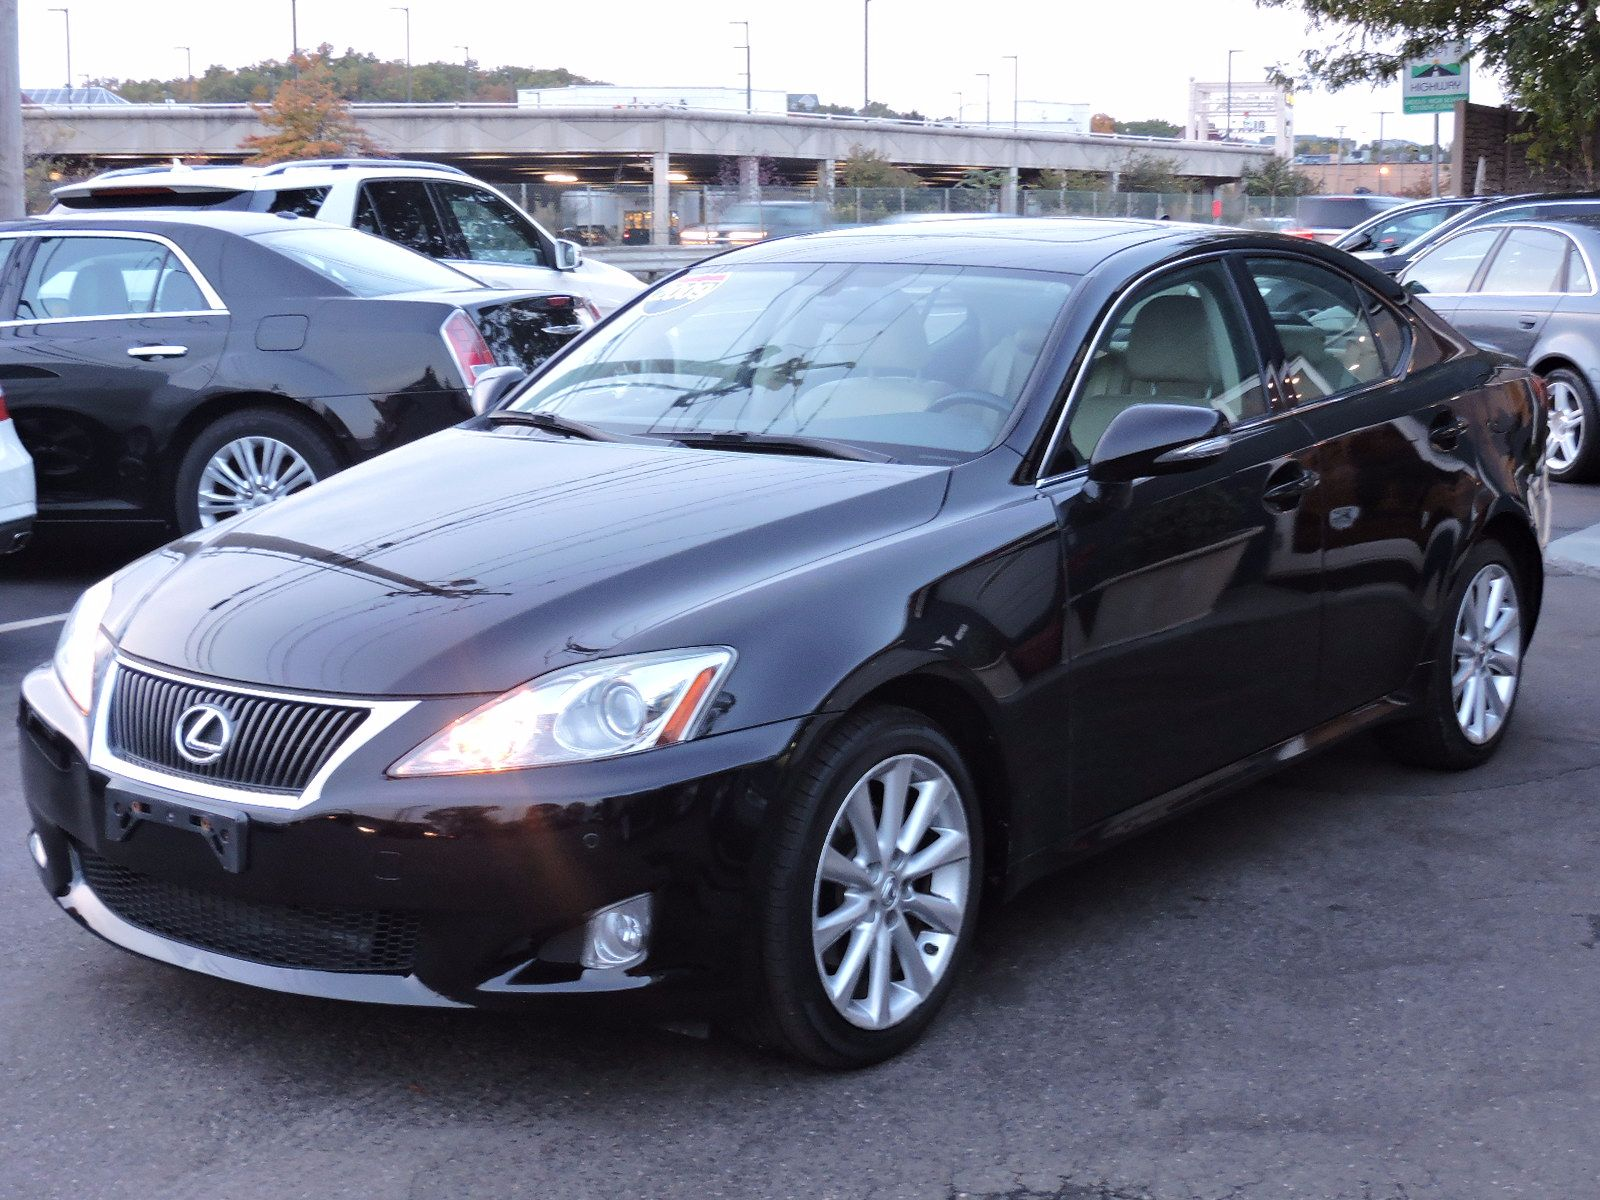 2009 Lexus IS 250 - All Wheel Drive - Navigation